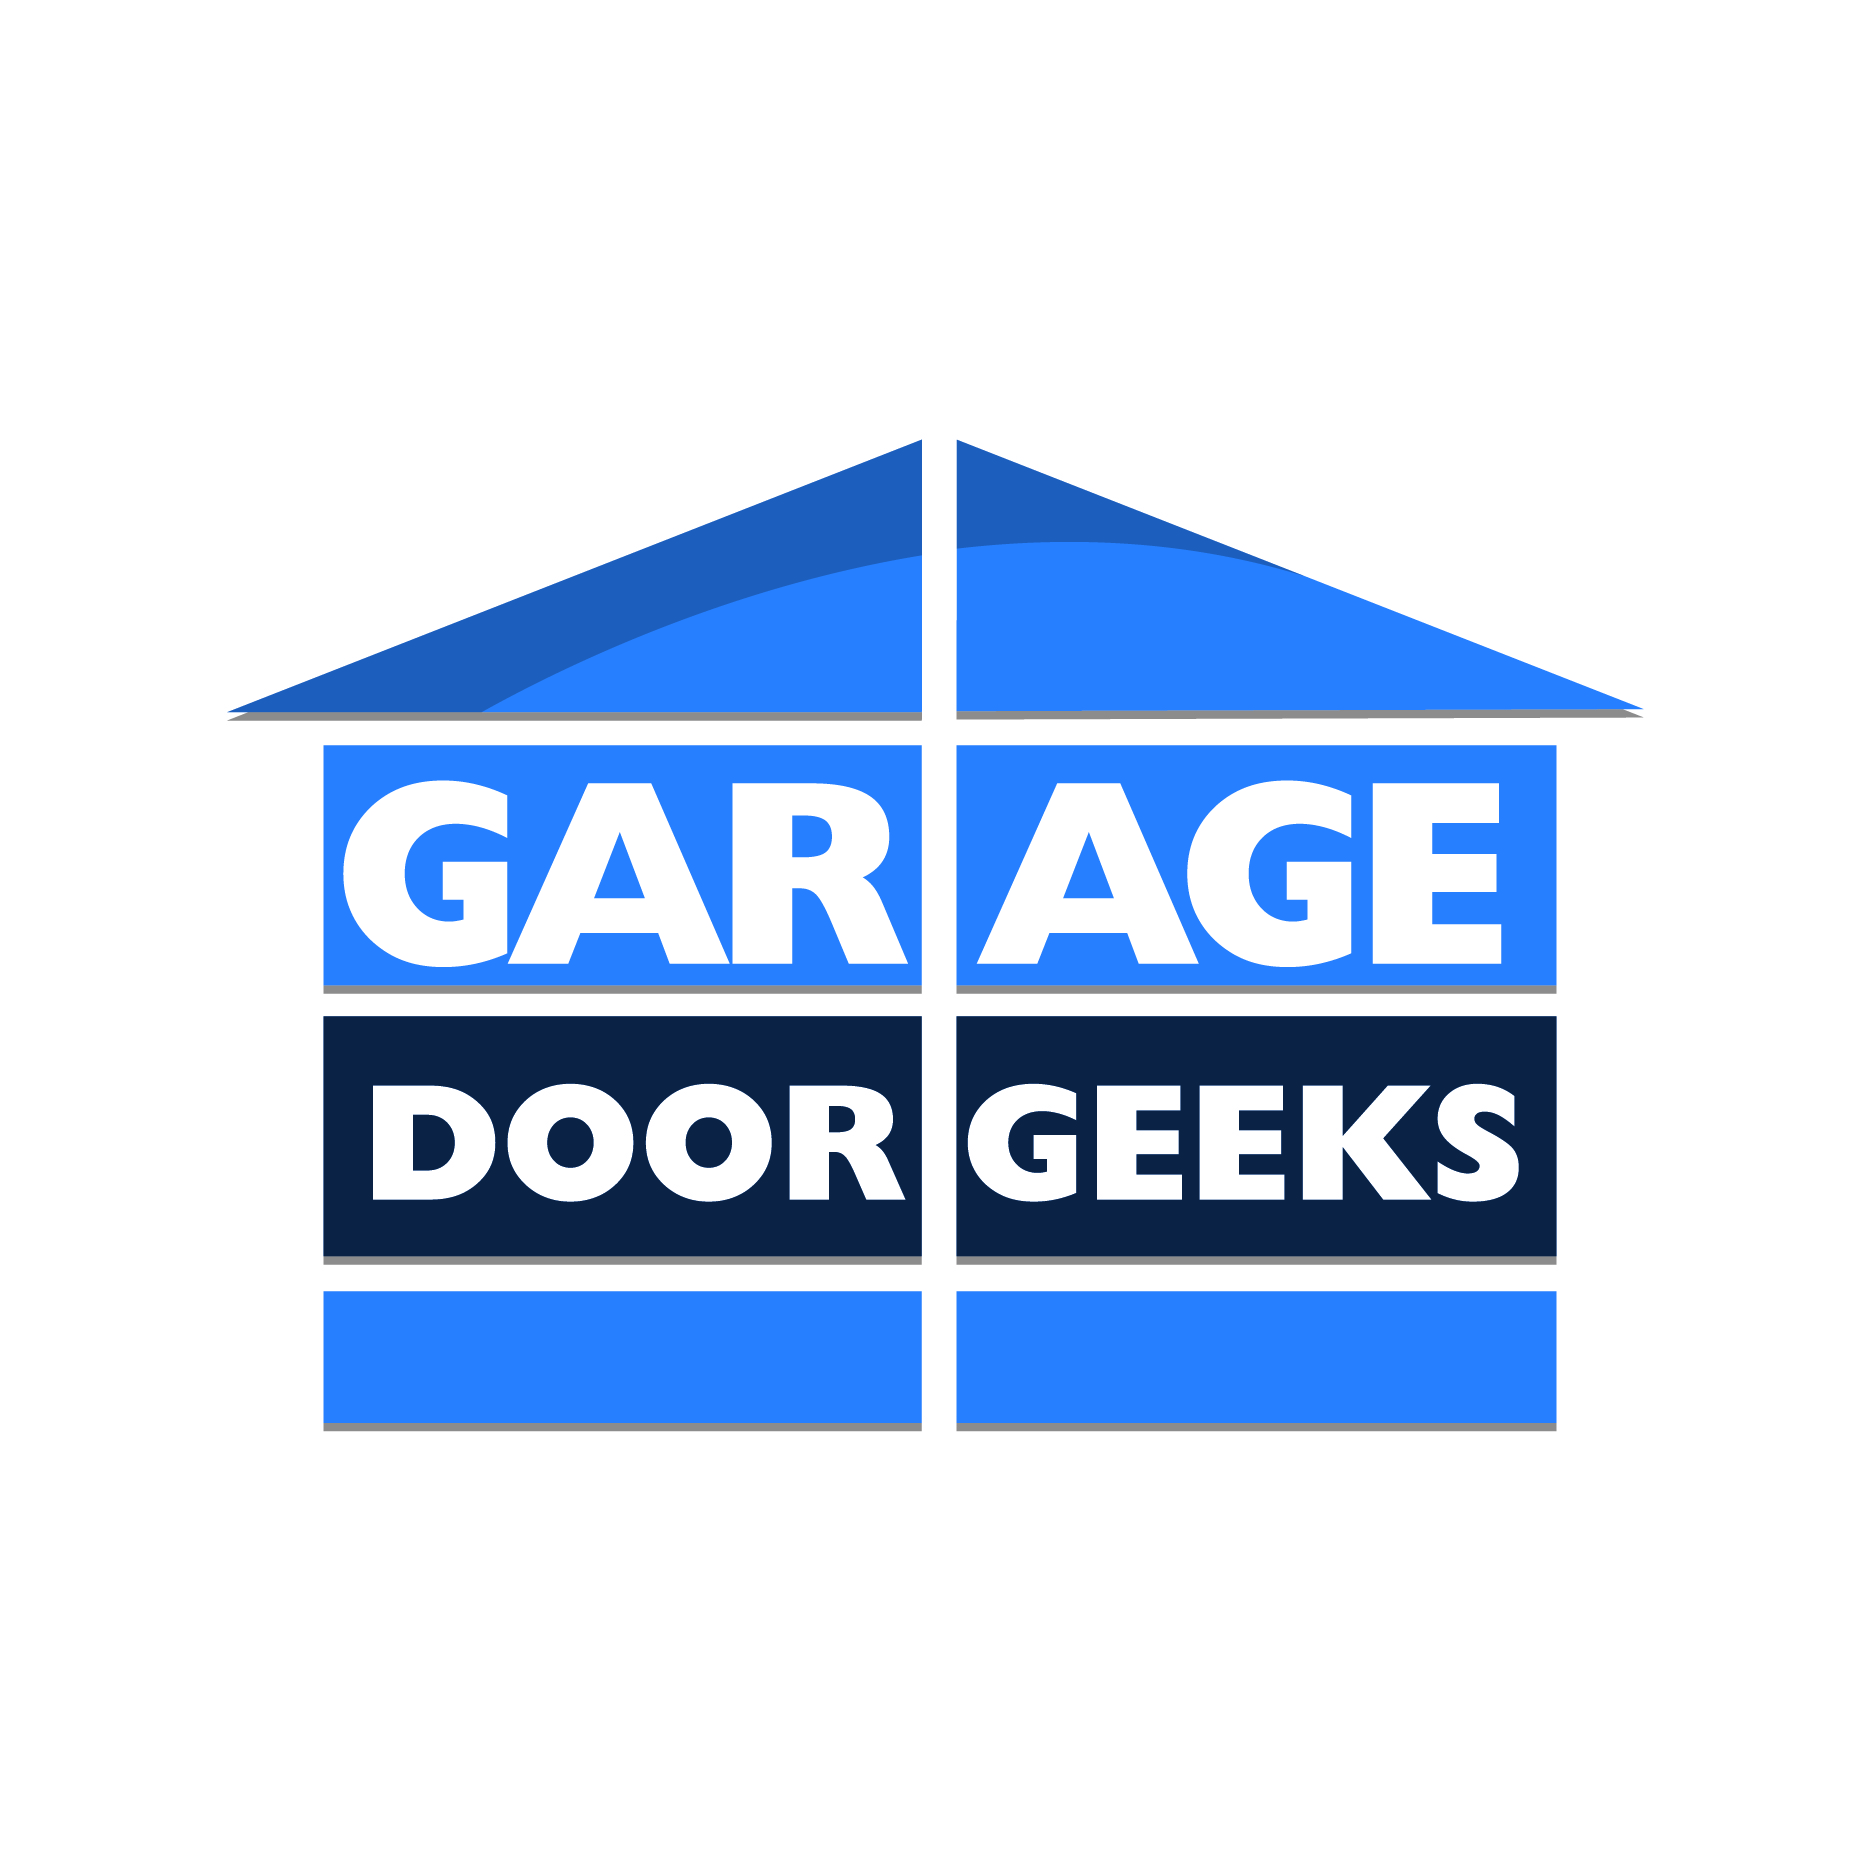 door garage mr fairfield stamford greenwich casella ct slide repair title